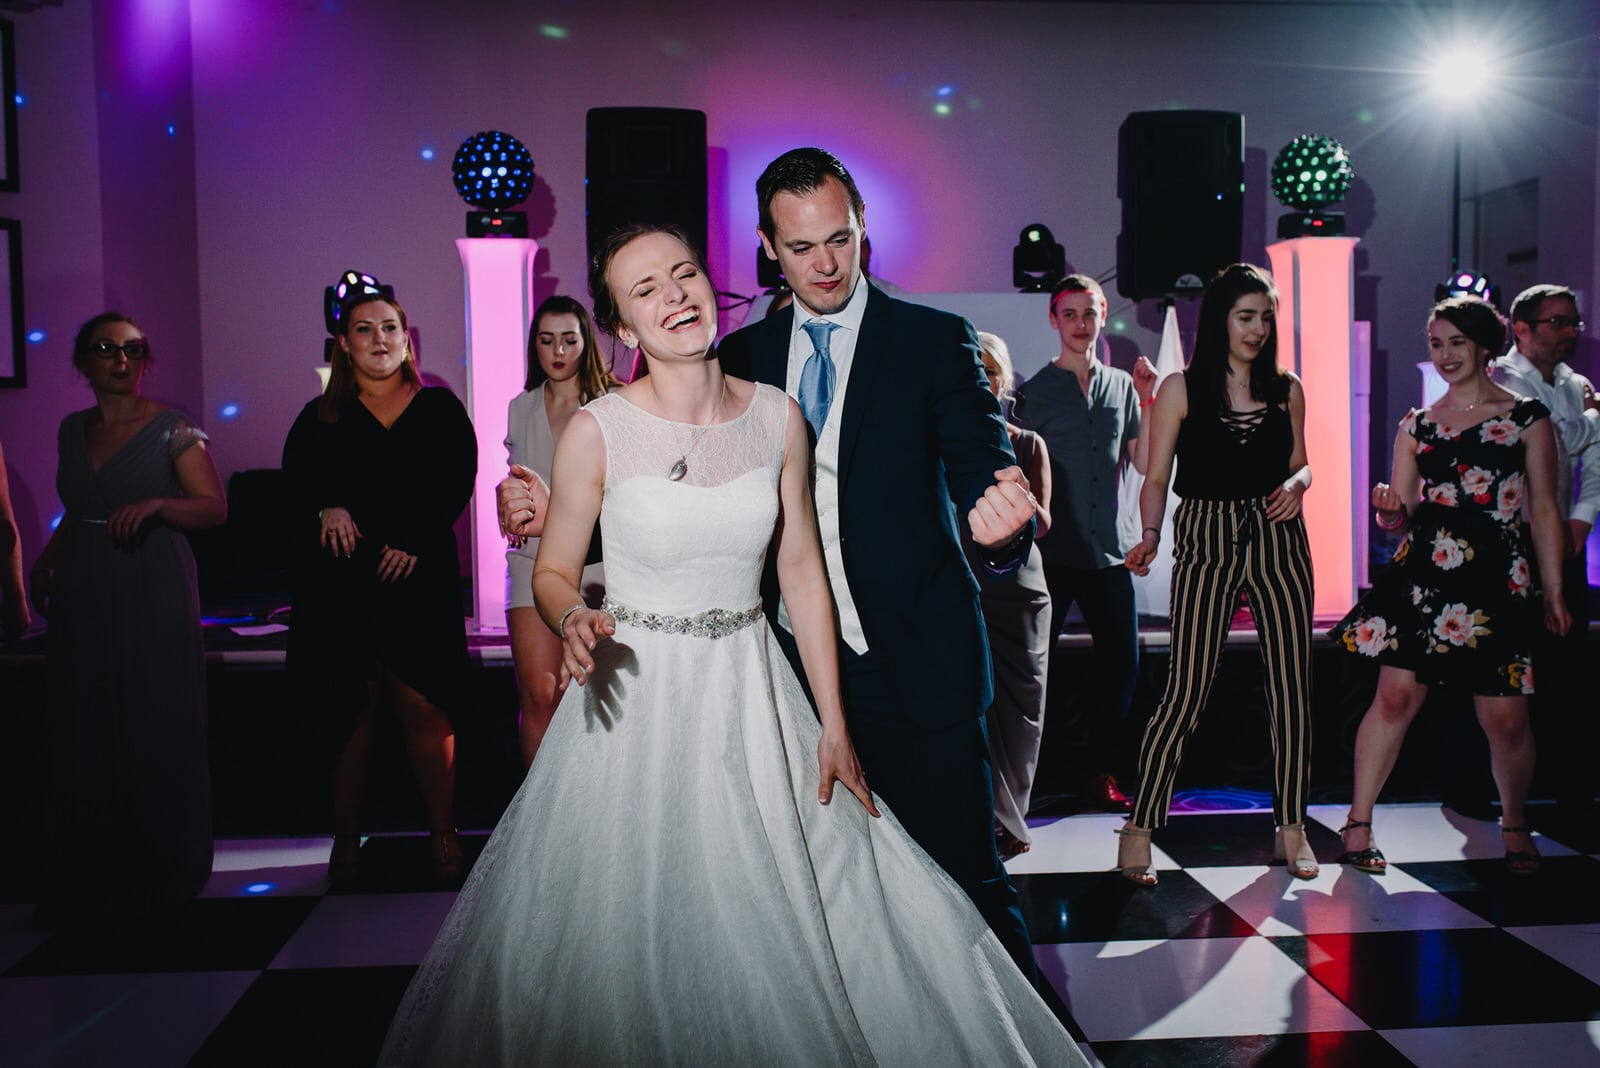 Staverton Estate Wedding - Daventry 107